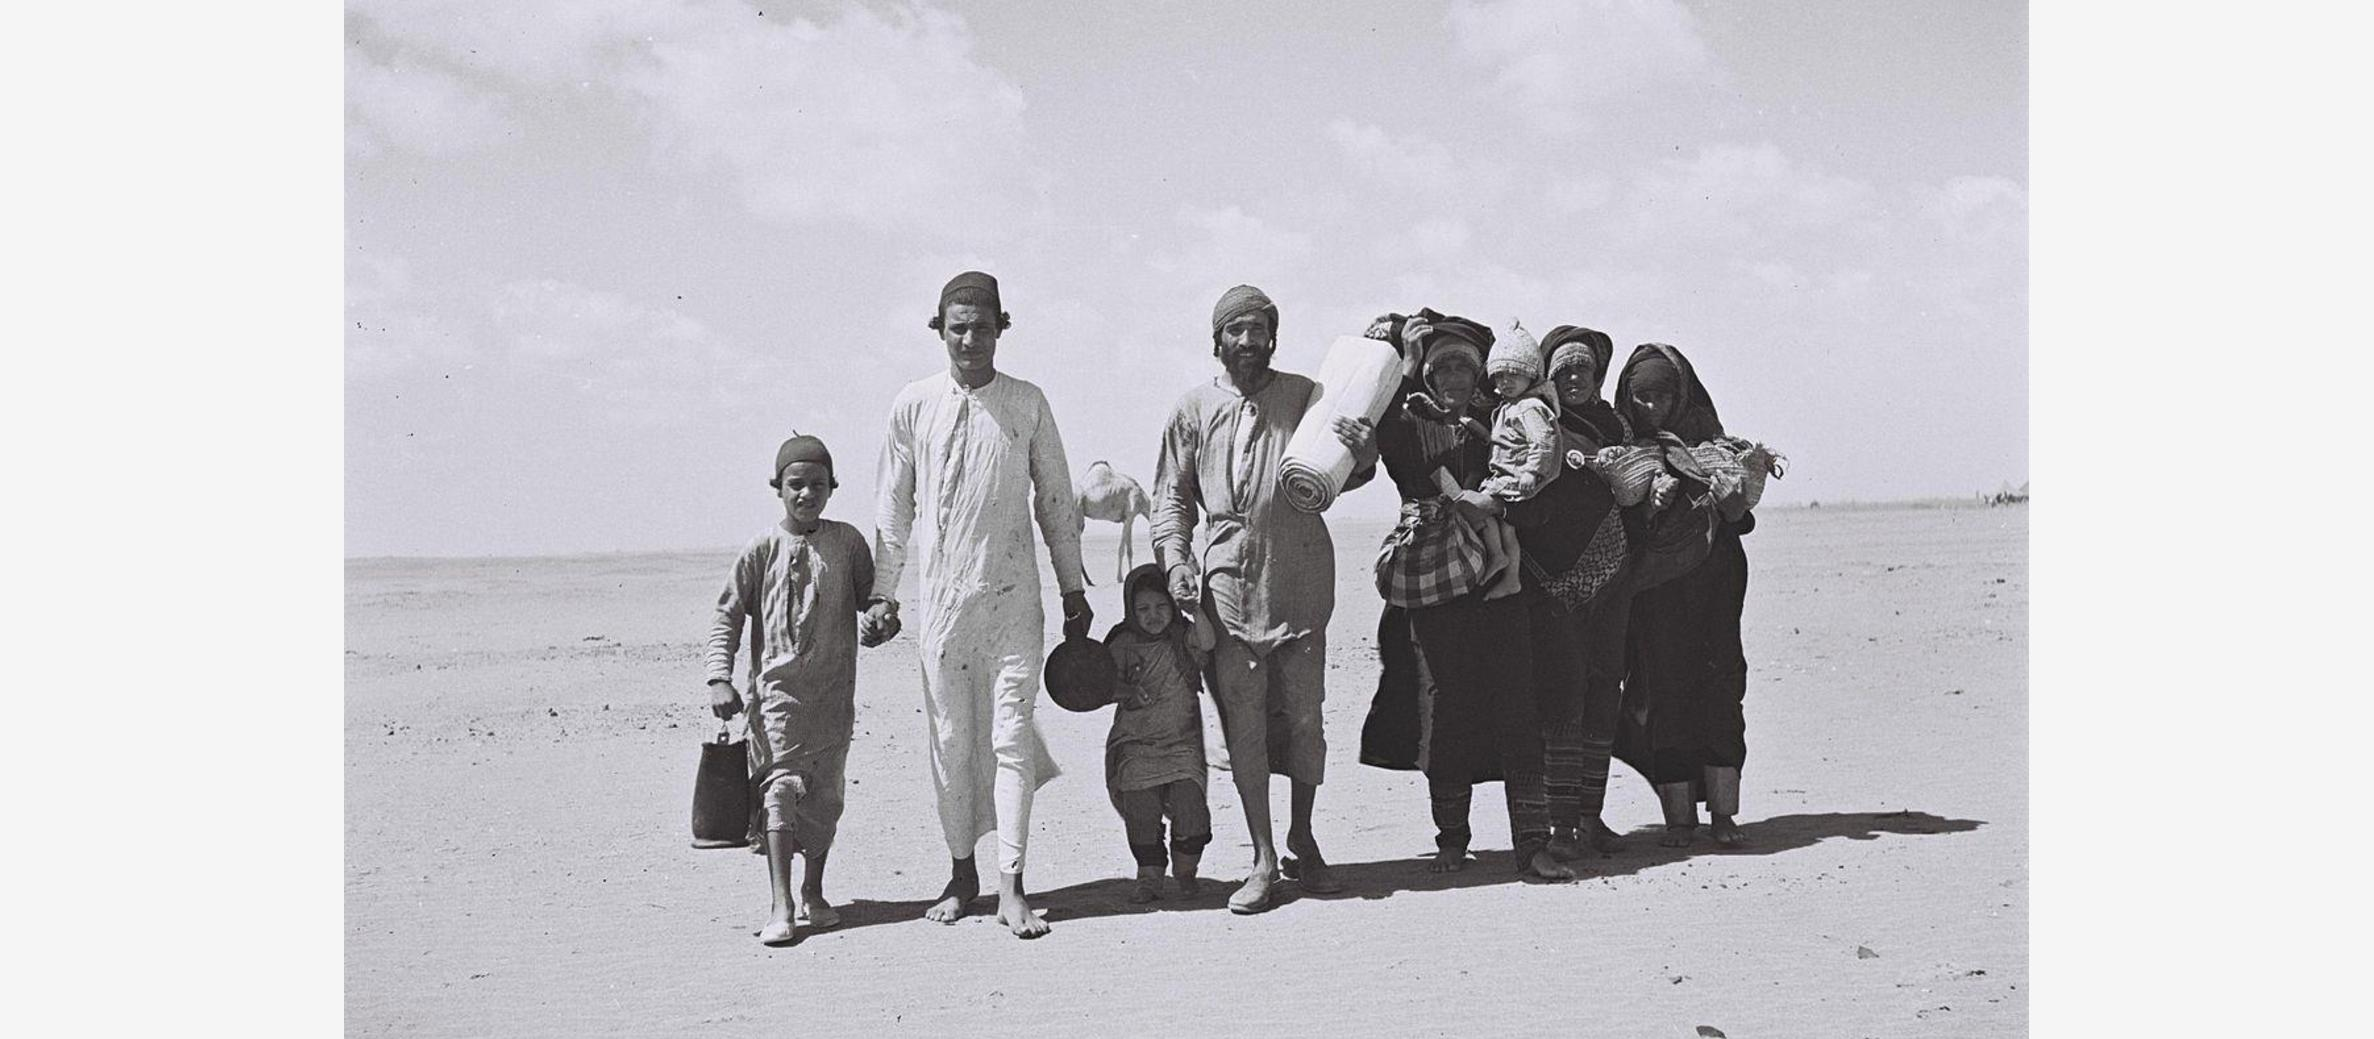 Remembering 850,000 Jews expelled from Arab lands